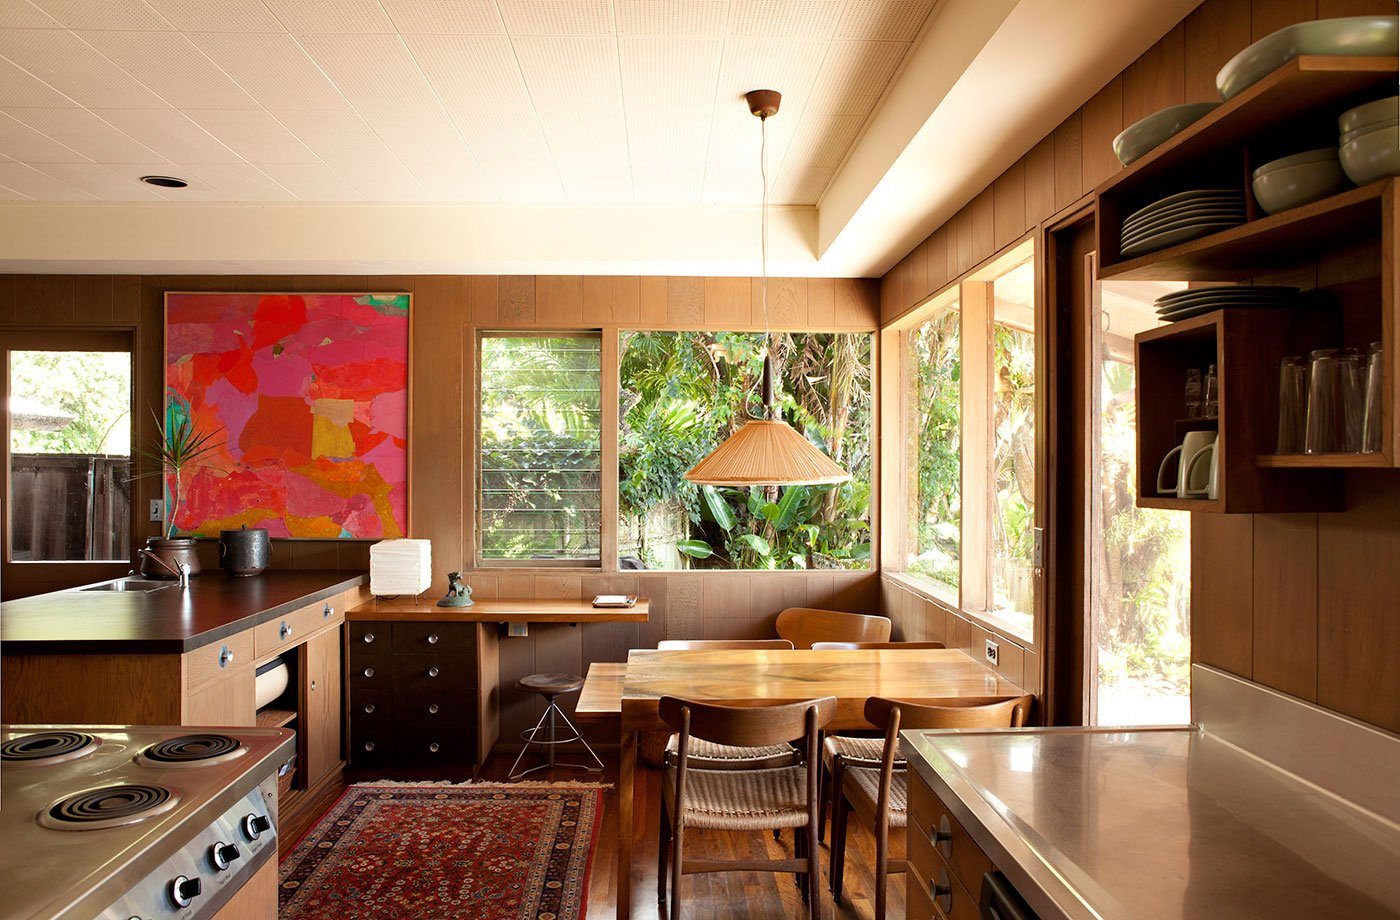 Liljestrand House - Honolulu, Hawaii - Vladimir Ossipoff - kitchen